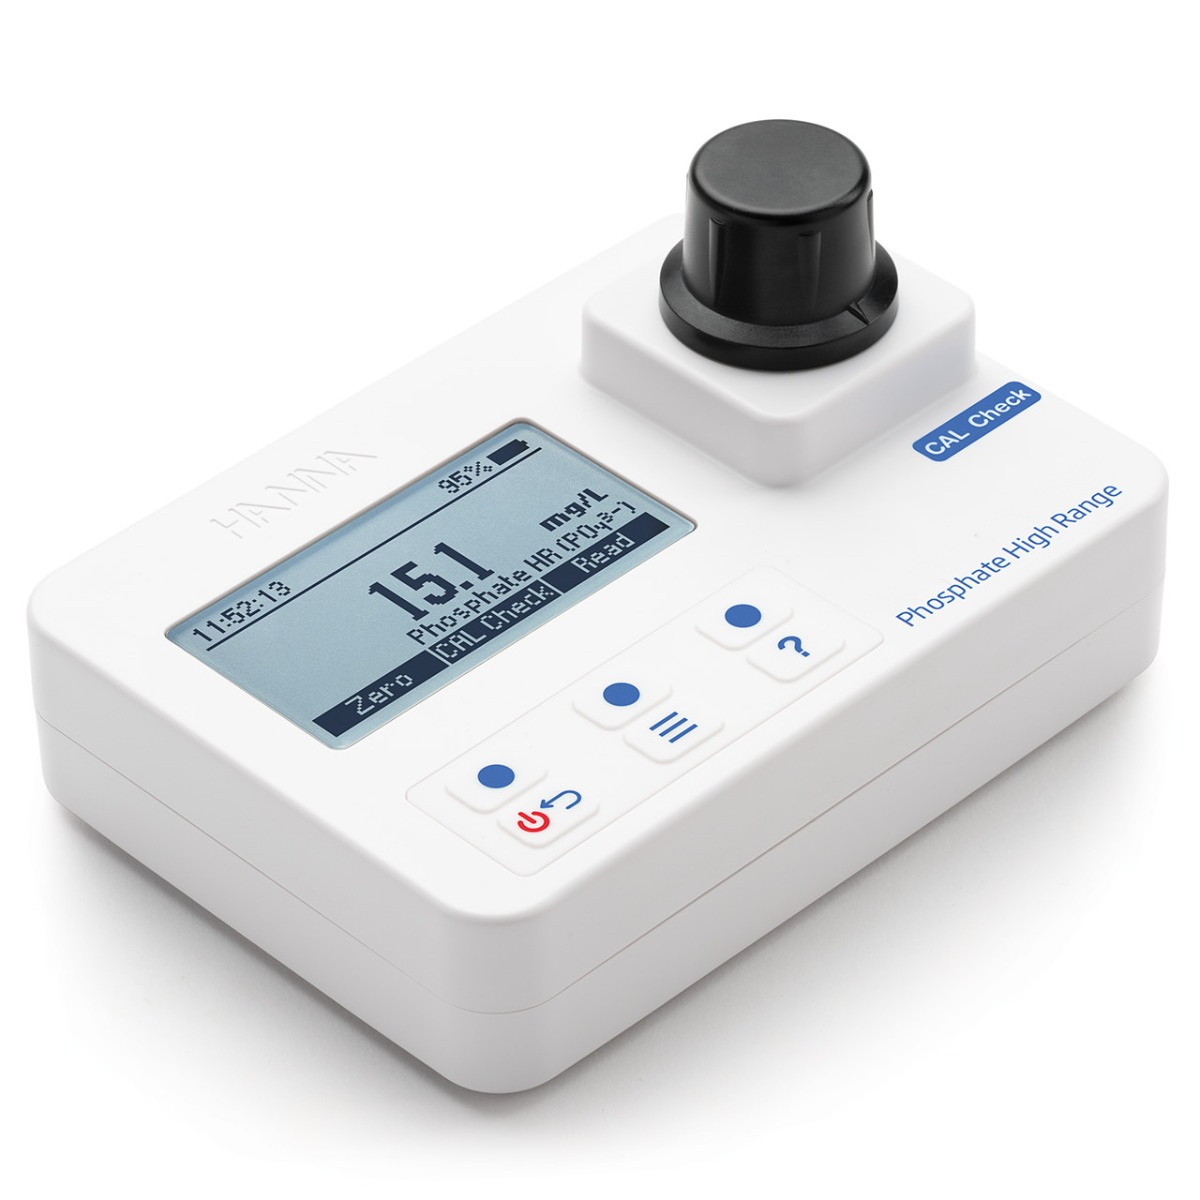 Phosphate High-Range Portable Photometer with CAL Check – HI97717